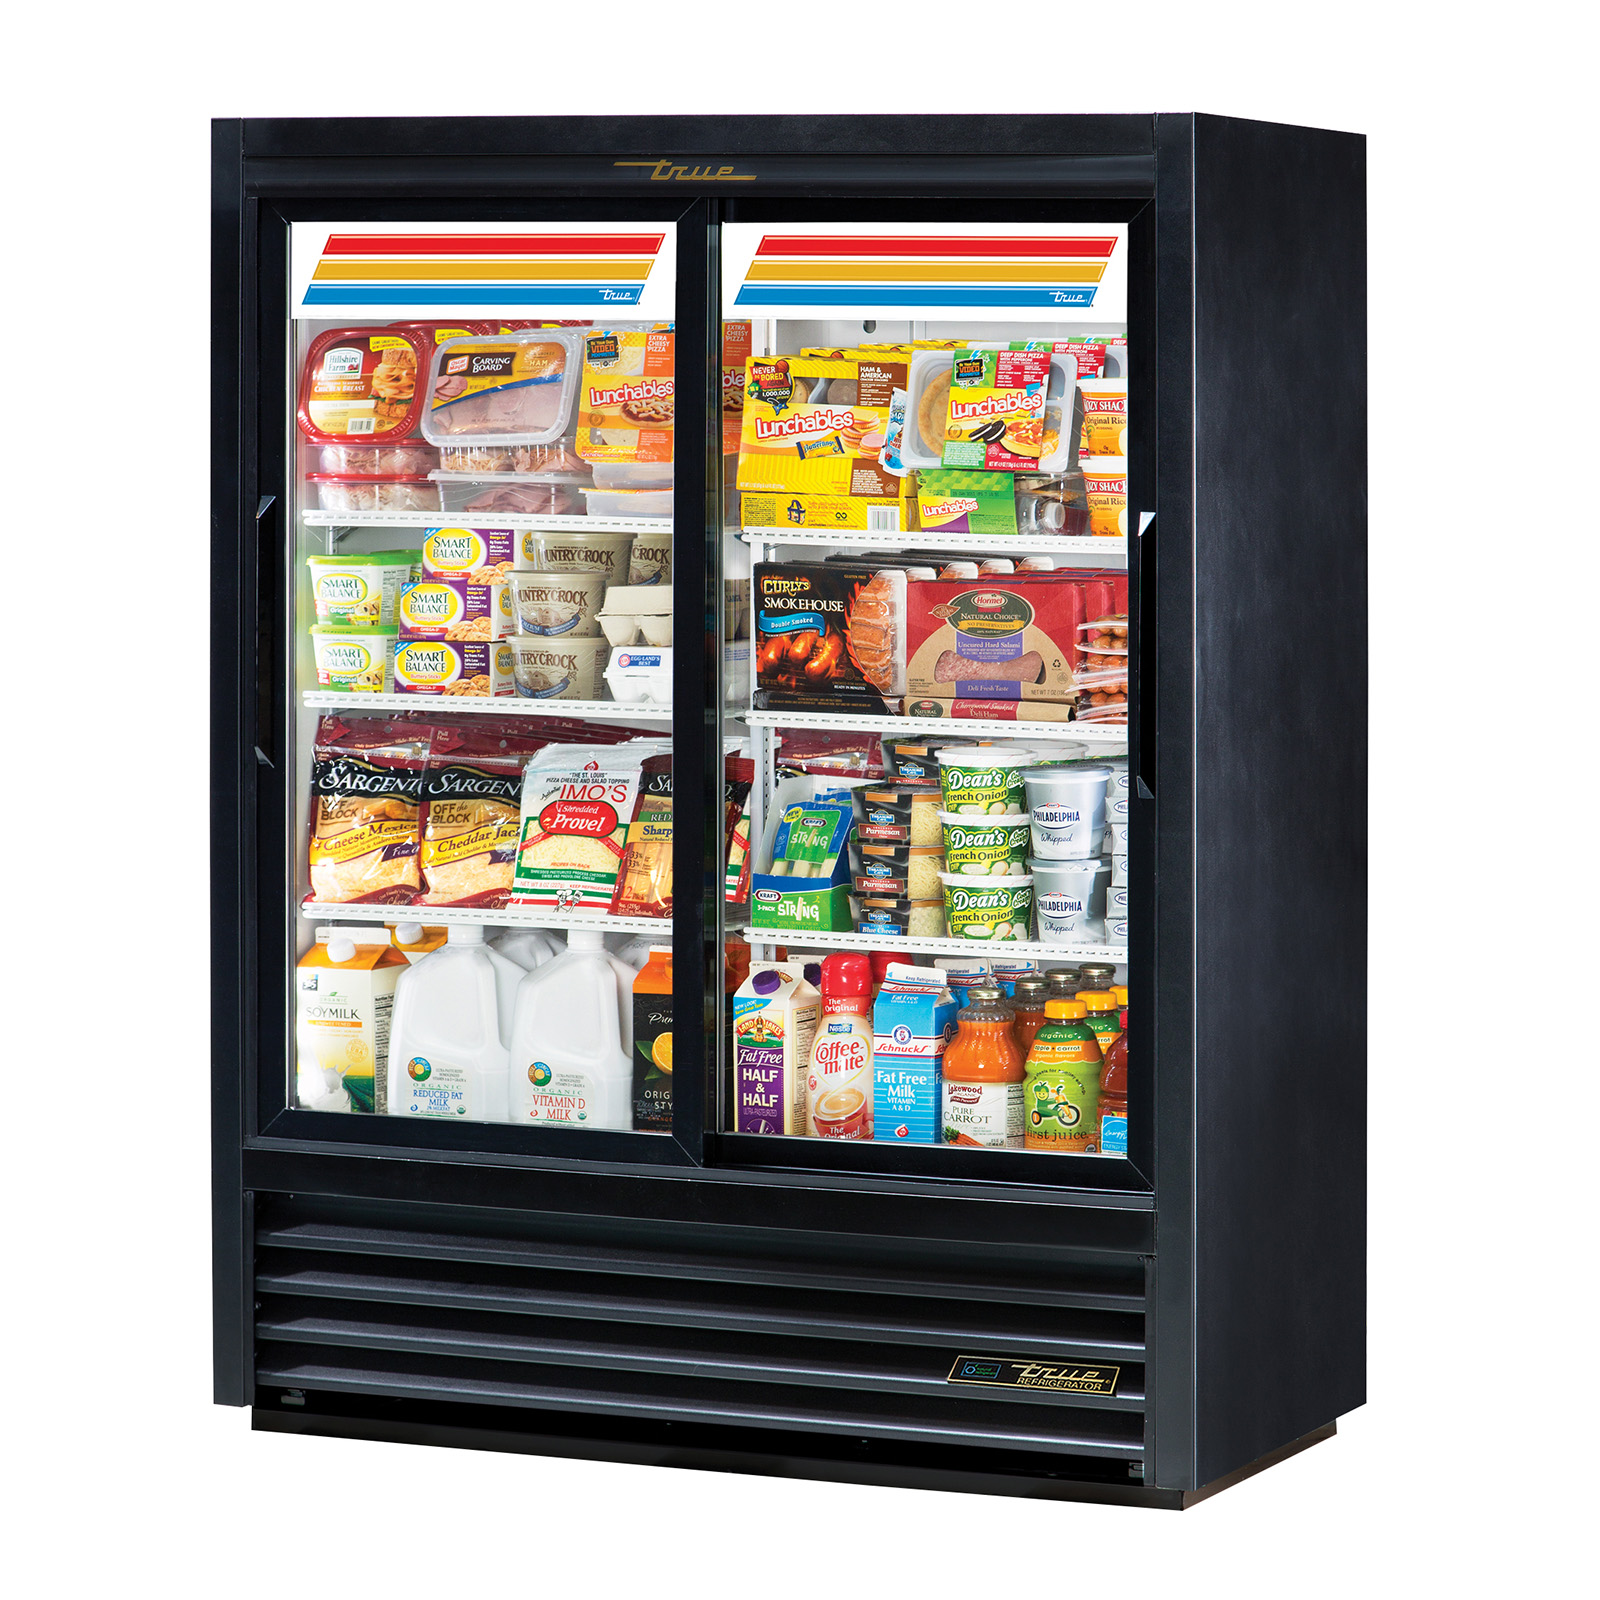 GDM-41SL-60-HC-LD True - Convenience Store Cooler two-section